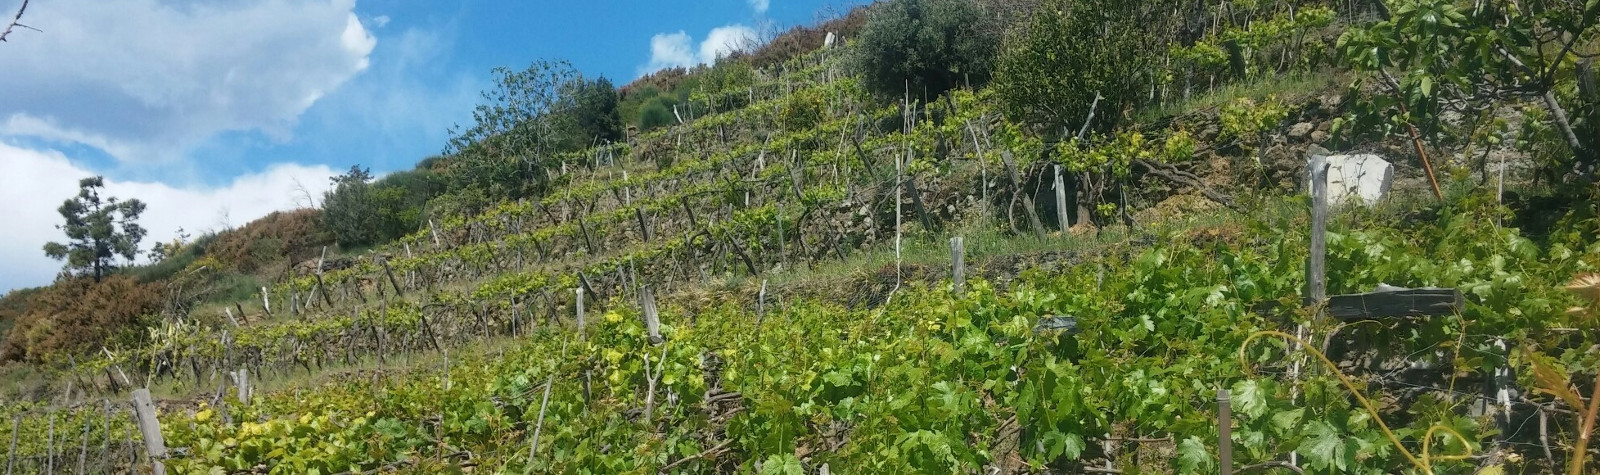 Sustainable Wine Tourism in Bonassola Cinque Terre: interview with a local winemaker